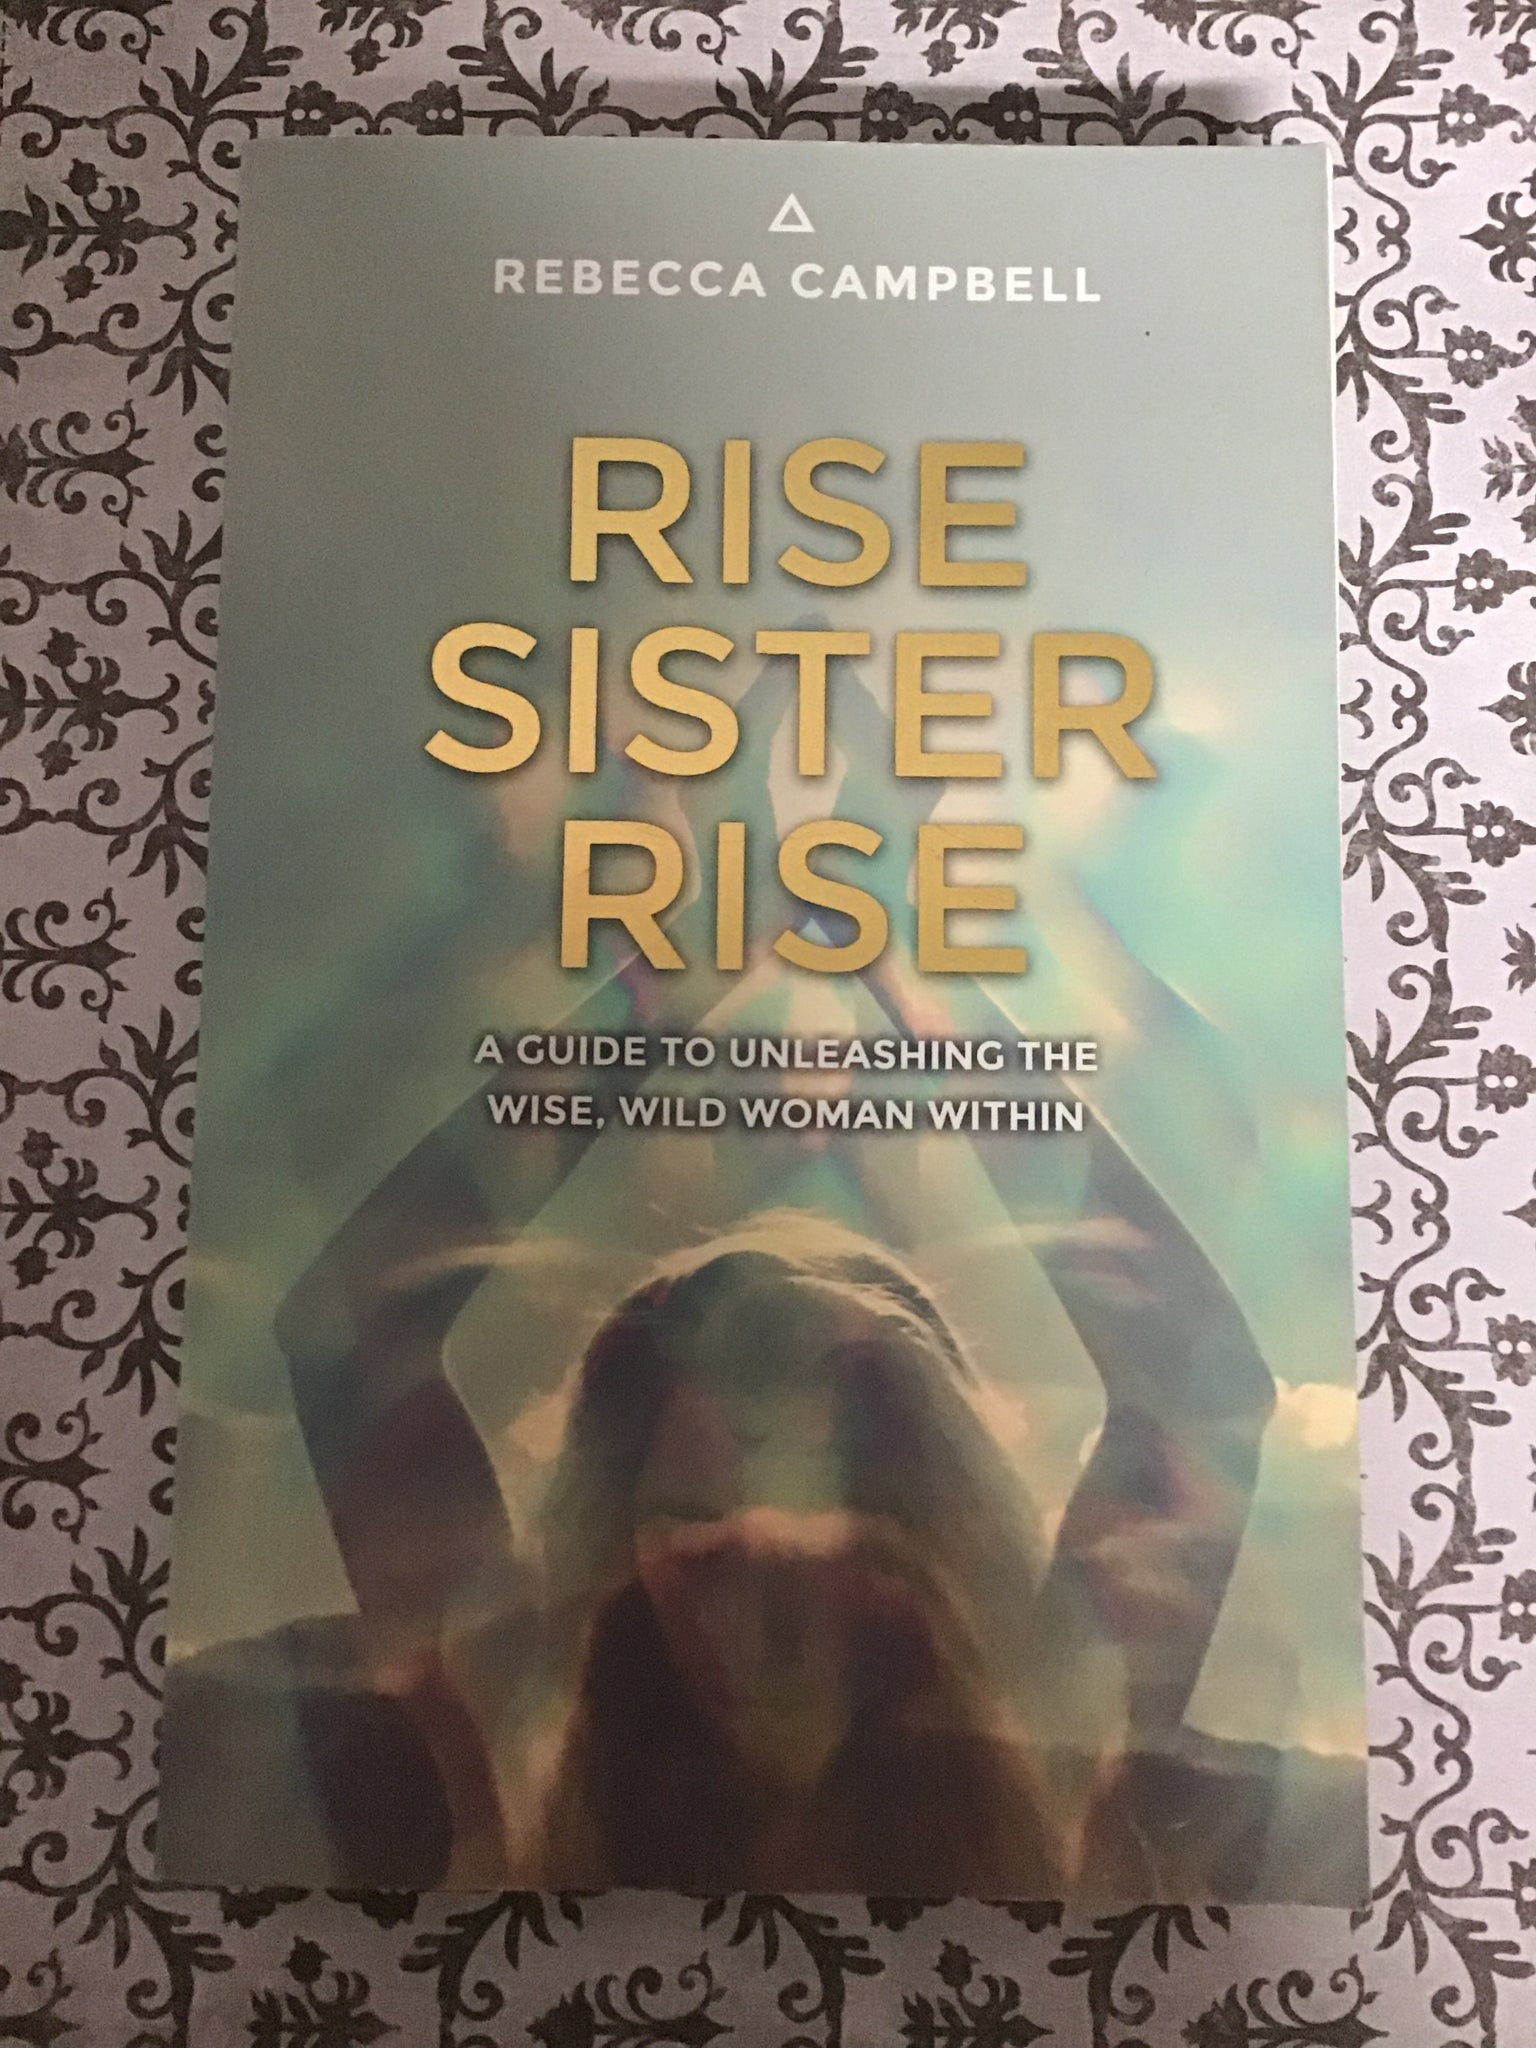 Rise Sister Rise: A Guide to Unleashing the Wise, Wild Woman Within - Rebecca Campbell ( Used - Very Good Condition ) - Tree Of Life Shoppe